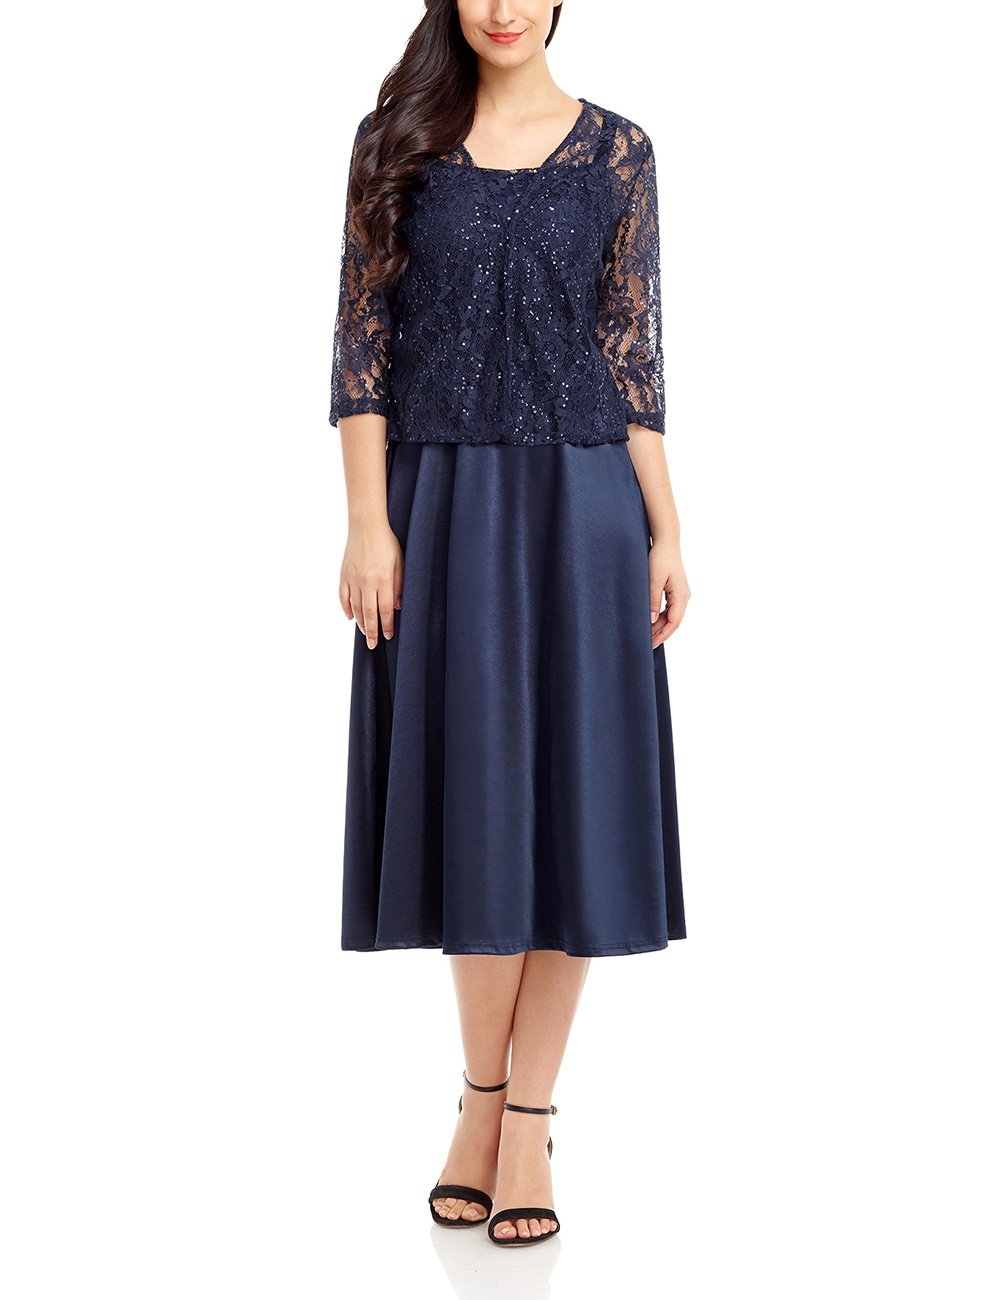 Lookbook Store Women's Two-Piece Set Mother of The Bride Dress with 3/4 Sleeve Lace Jacket Navy Blue Size Medium(US 8-10)